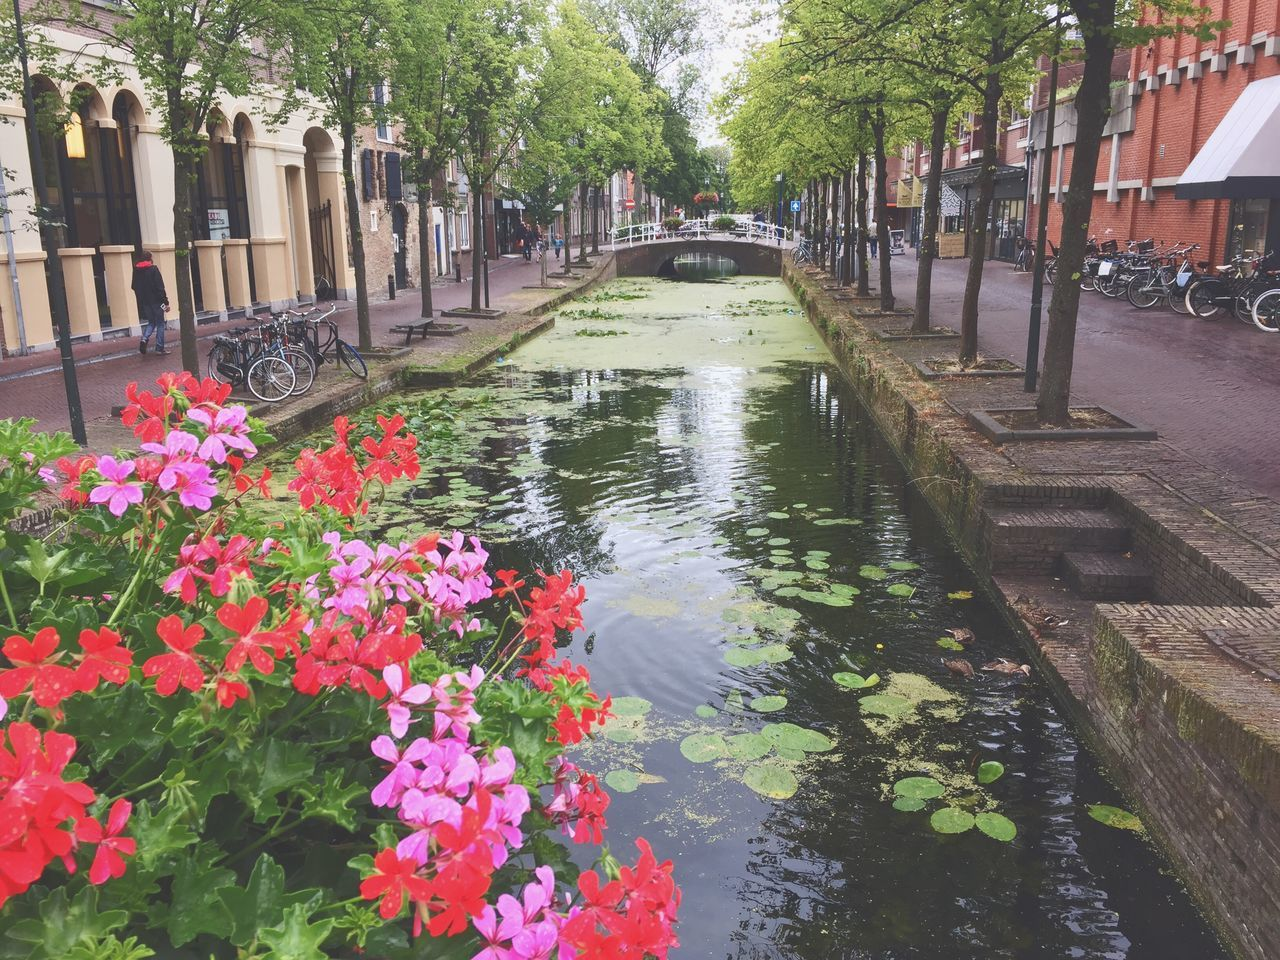 water, flower, outdoors, growth, plant, nature, day, no people, tree, architecture